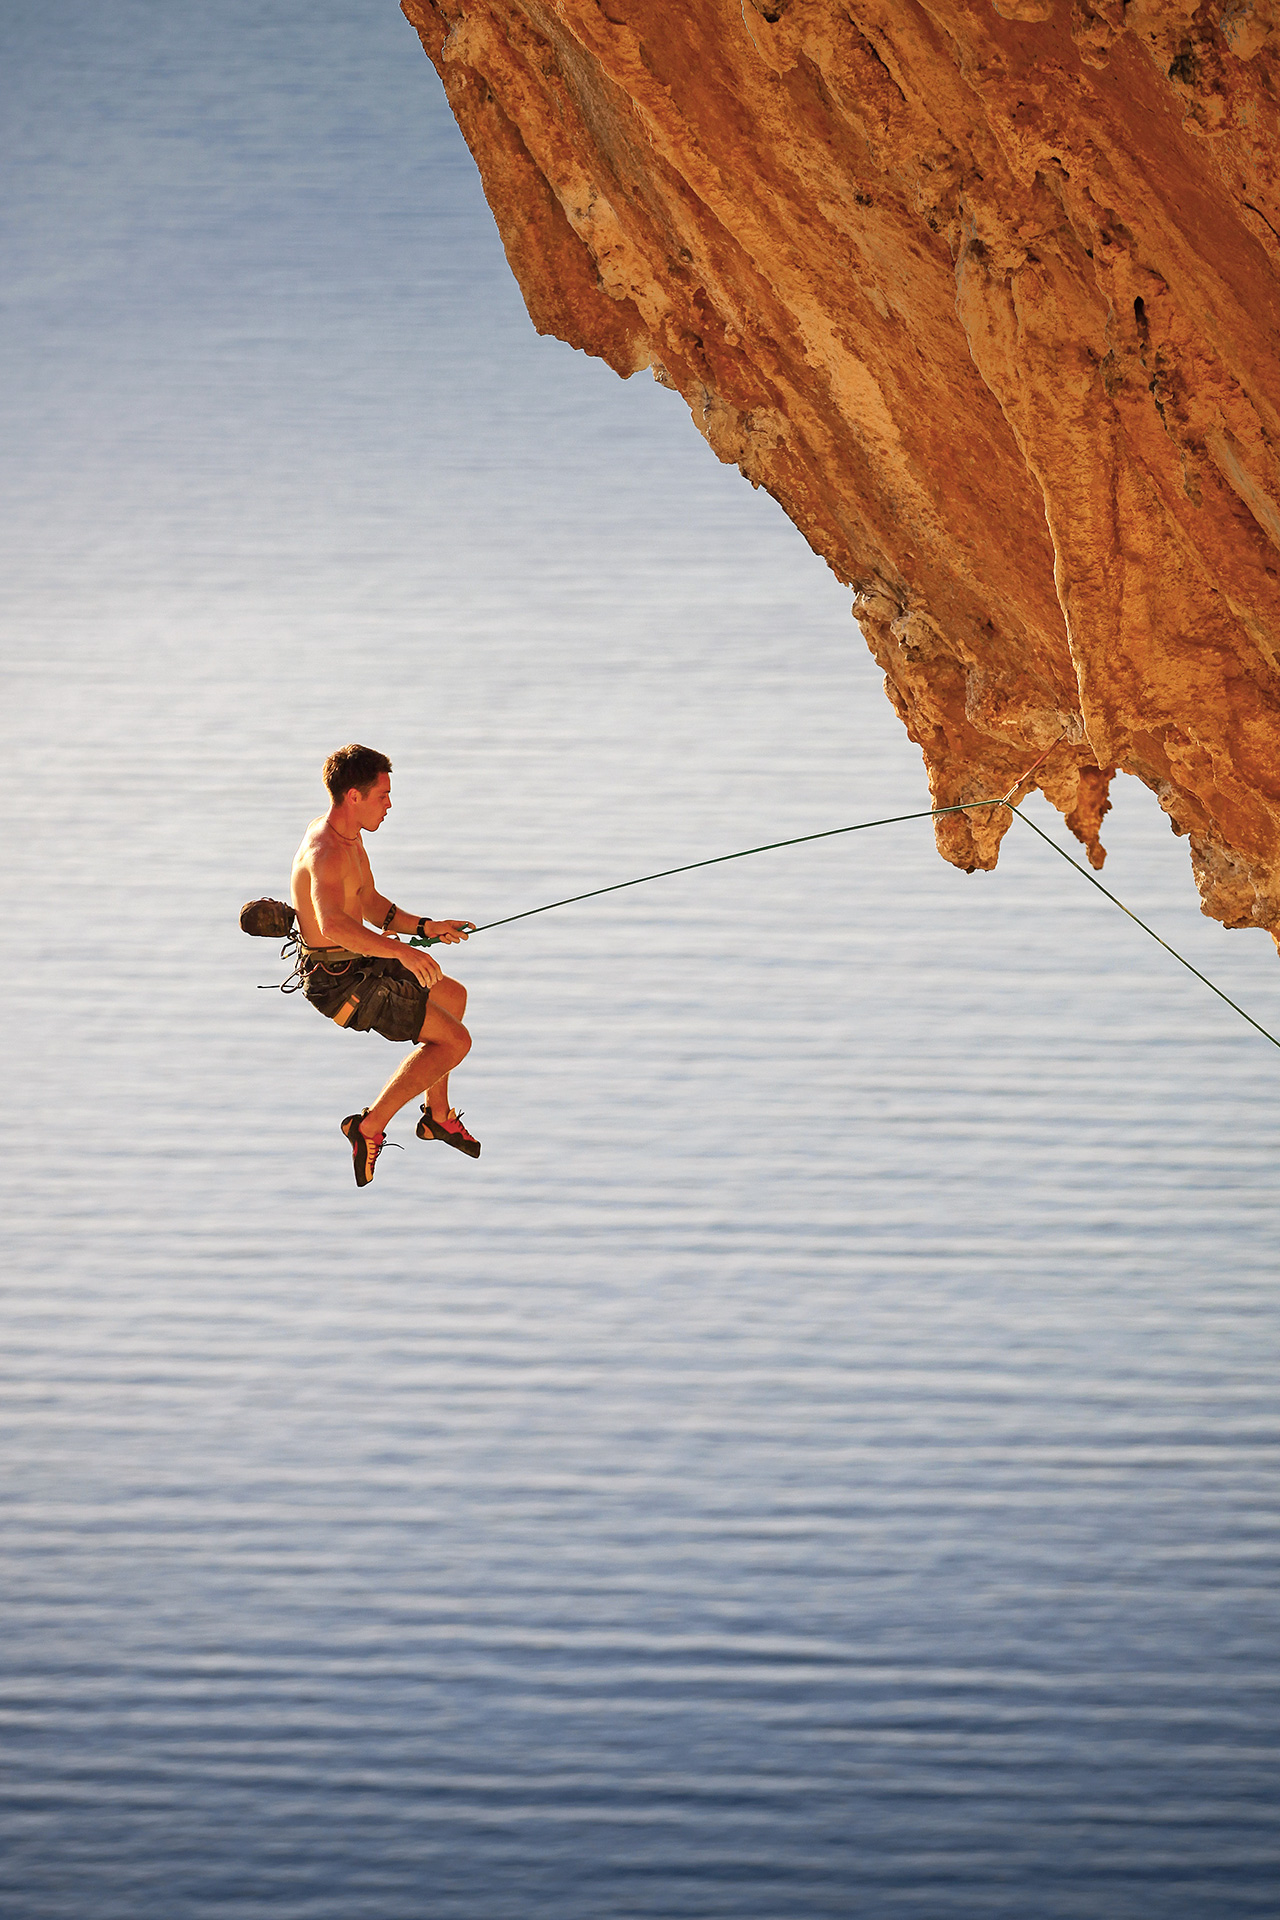 Rock climbing with style, in Kalymnos island